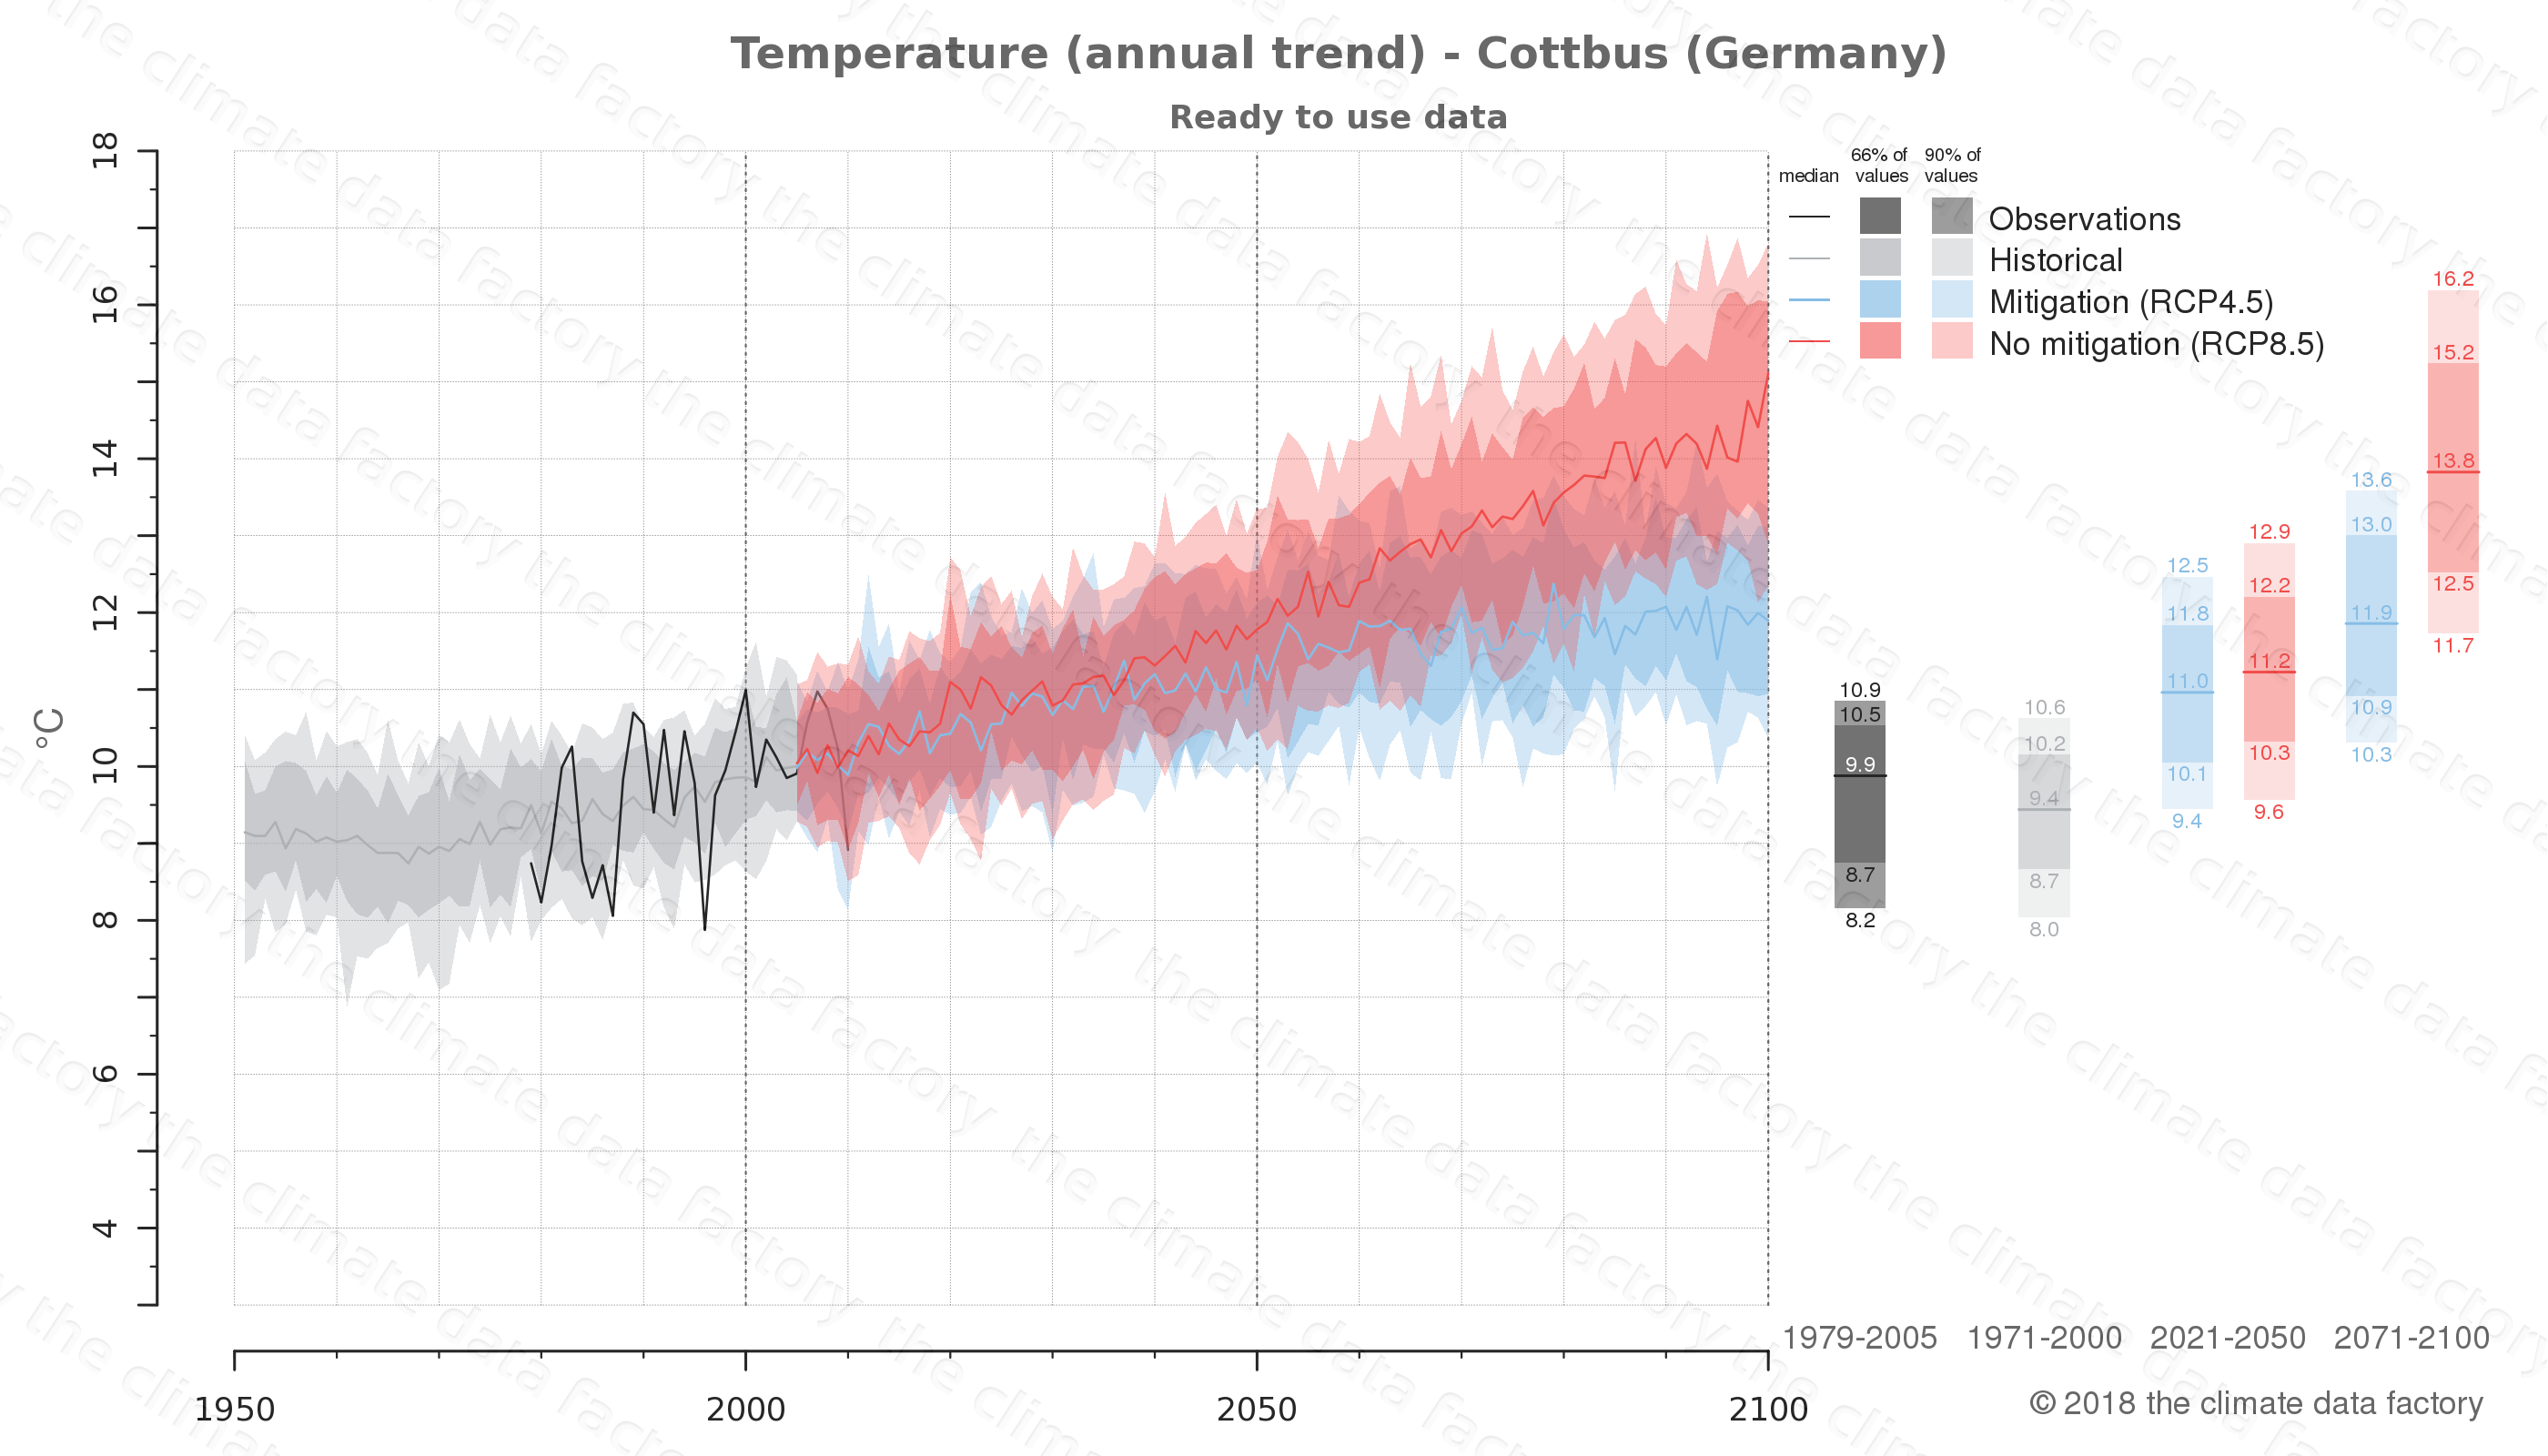 climate change data policy adaptation climate graph city data temperature cottbus germany